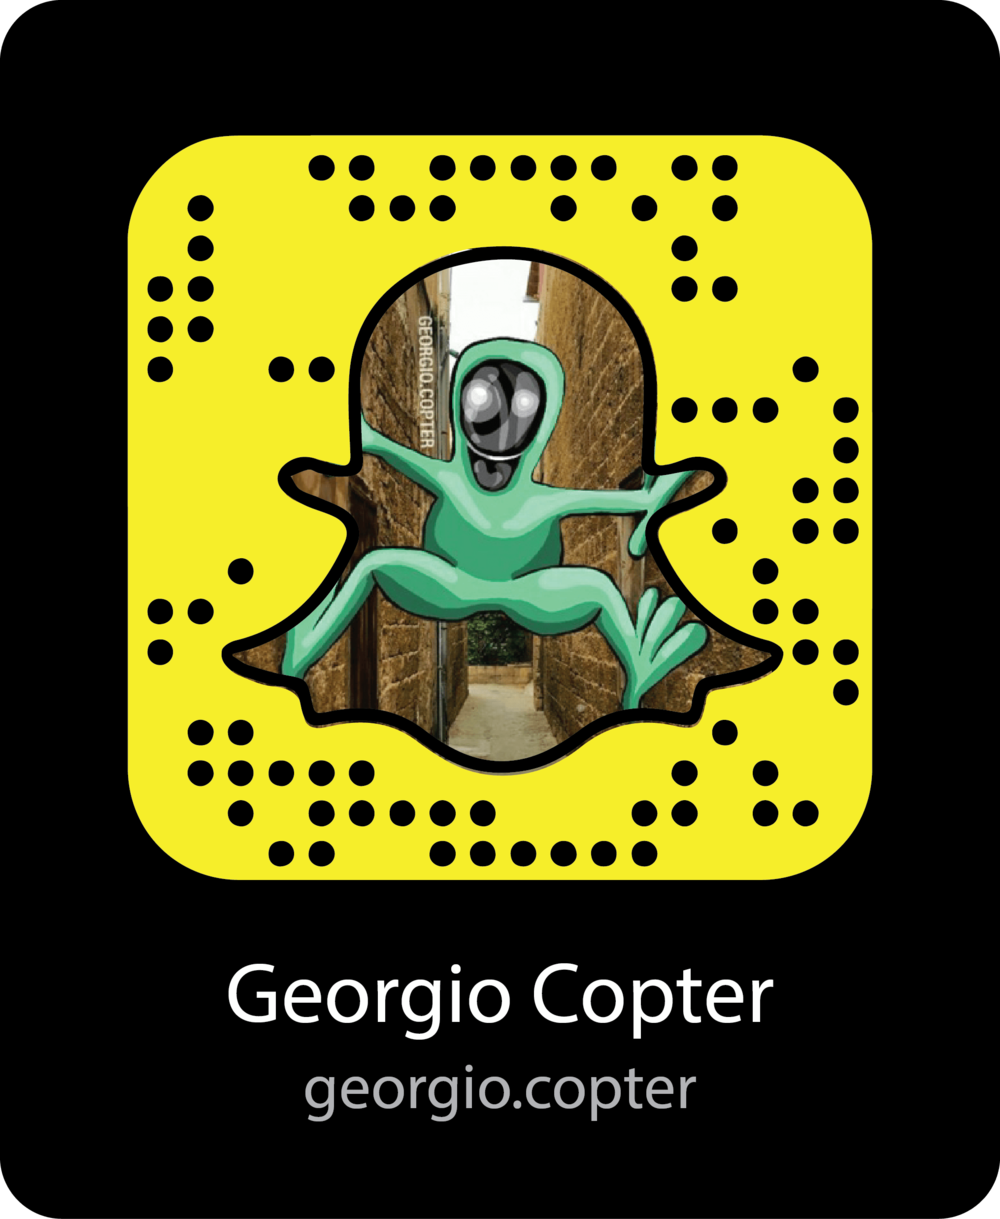 georgio-copter-artists-snapchat-snapcode